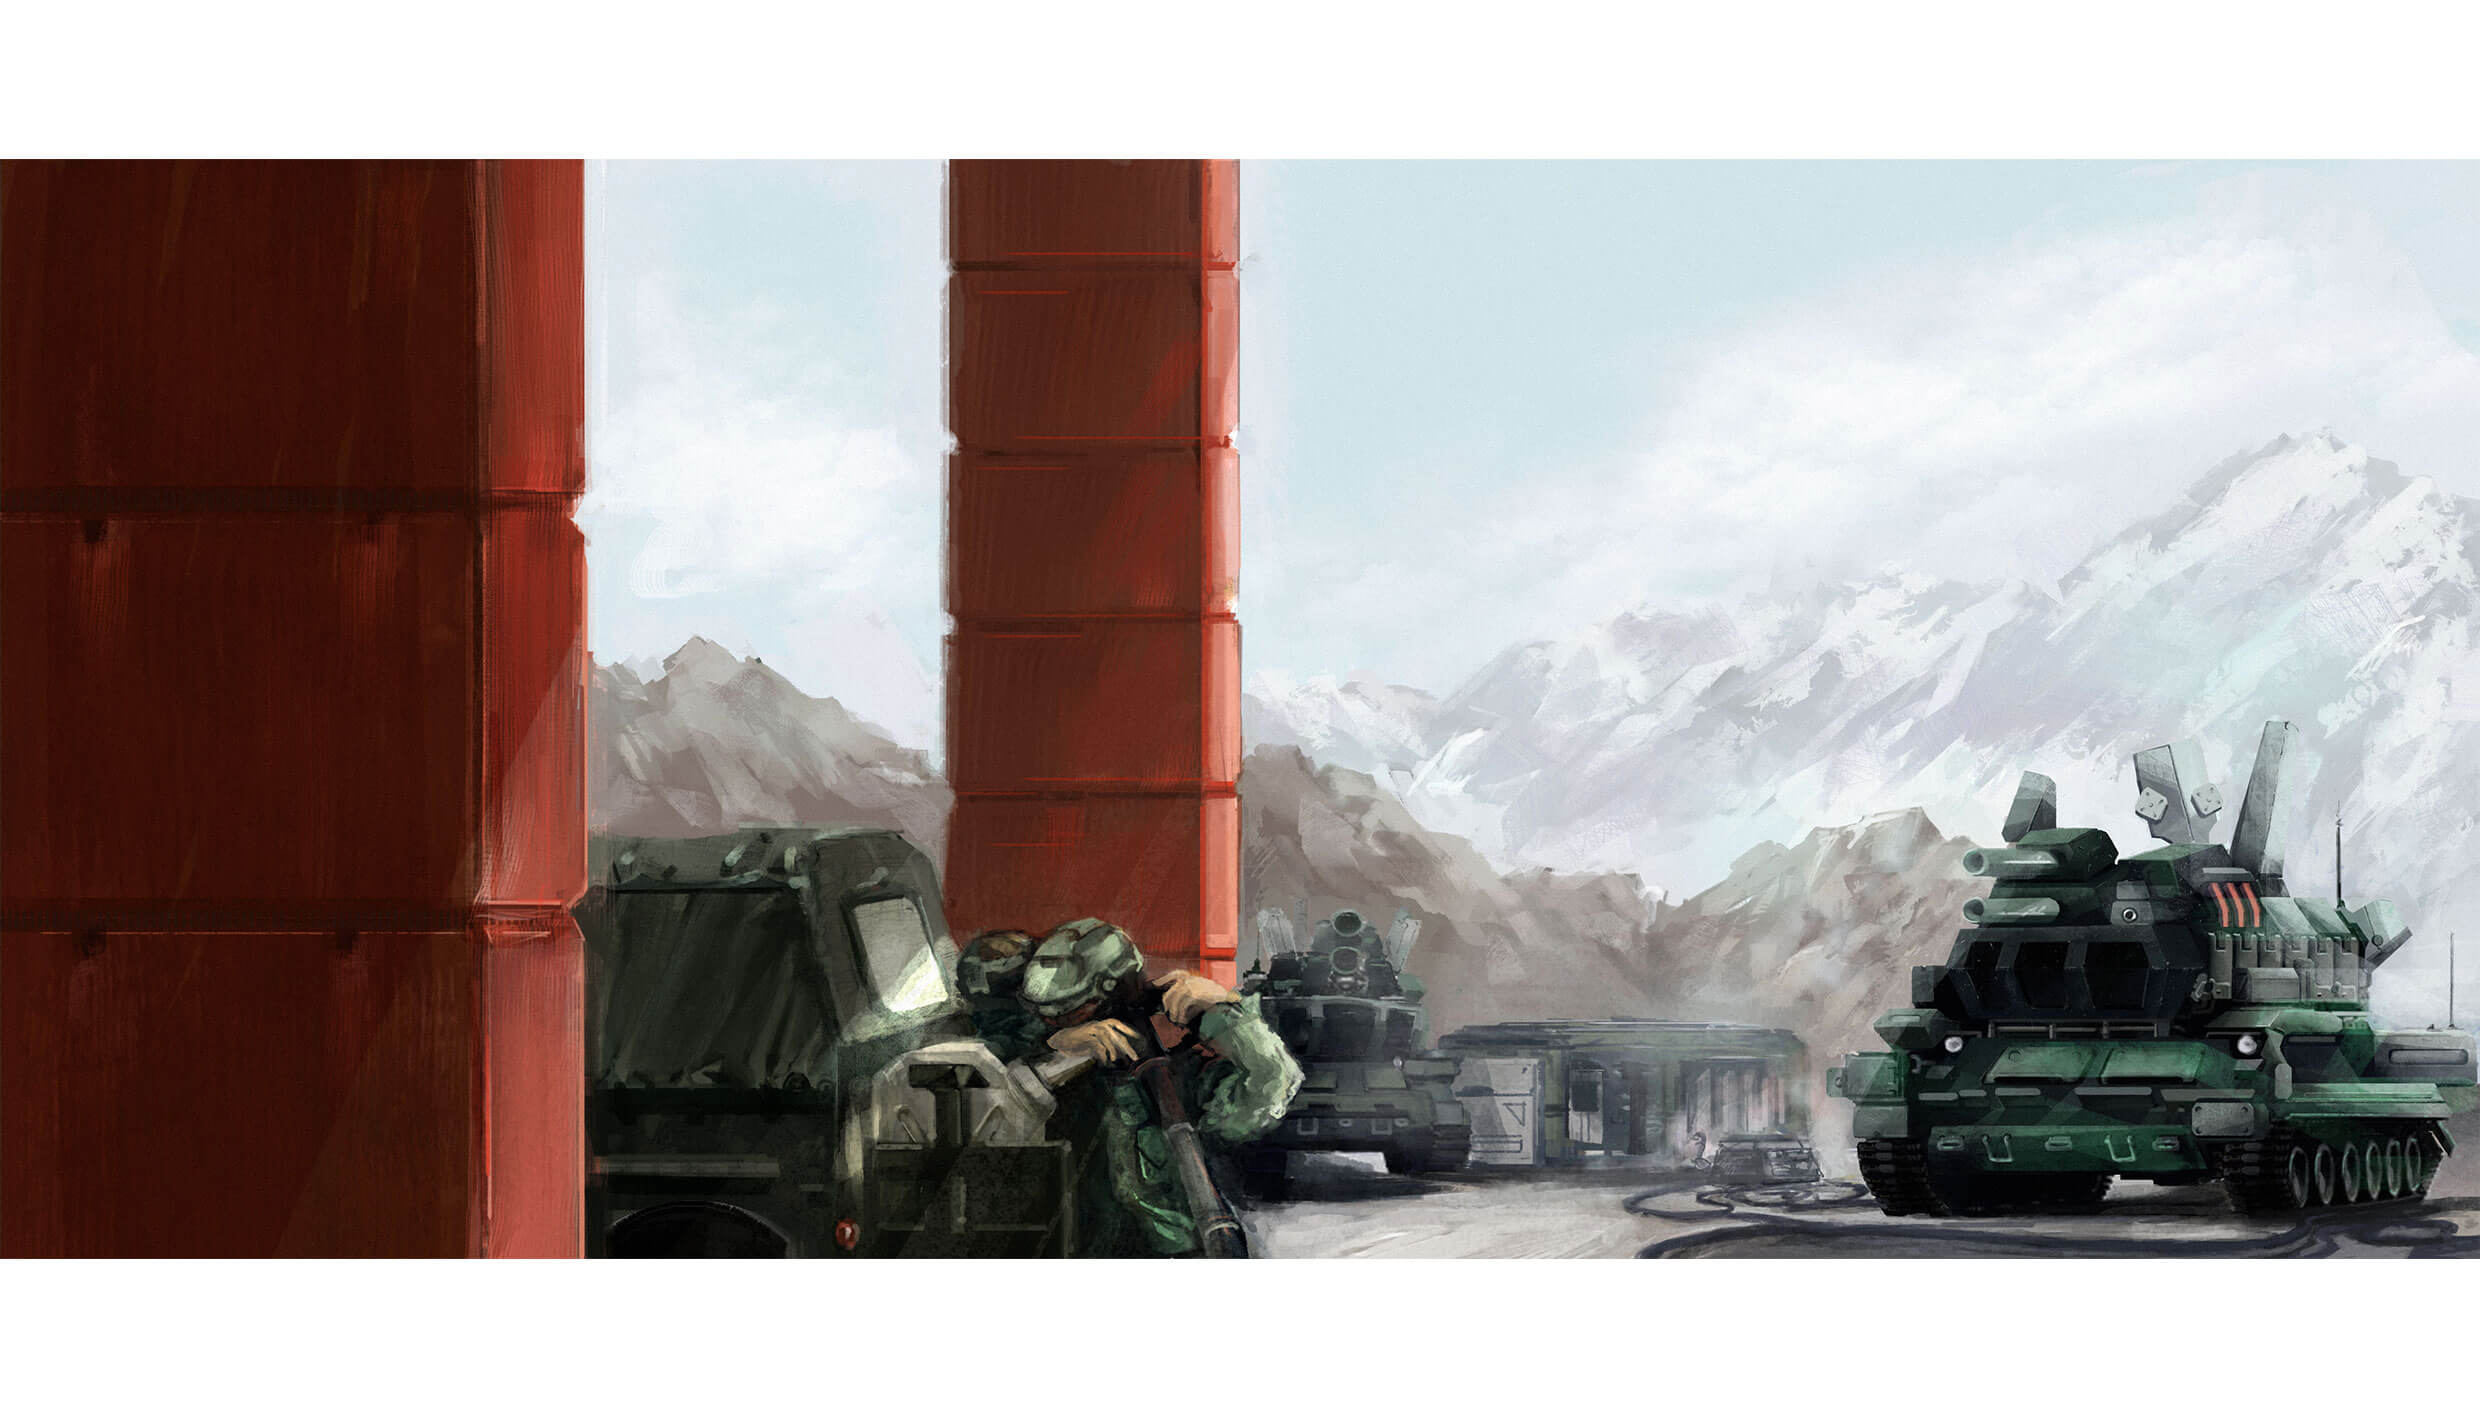 Military Based conceptual digital painting